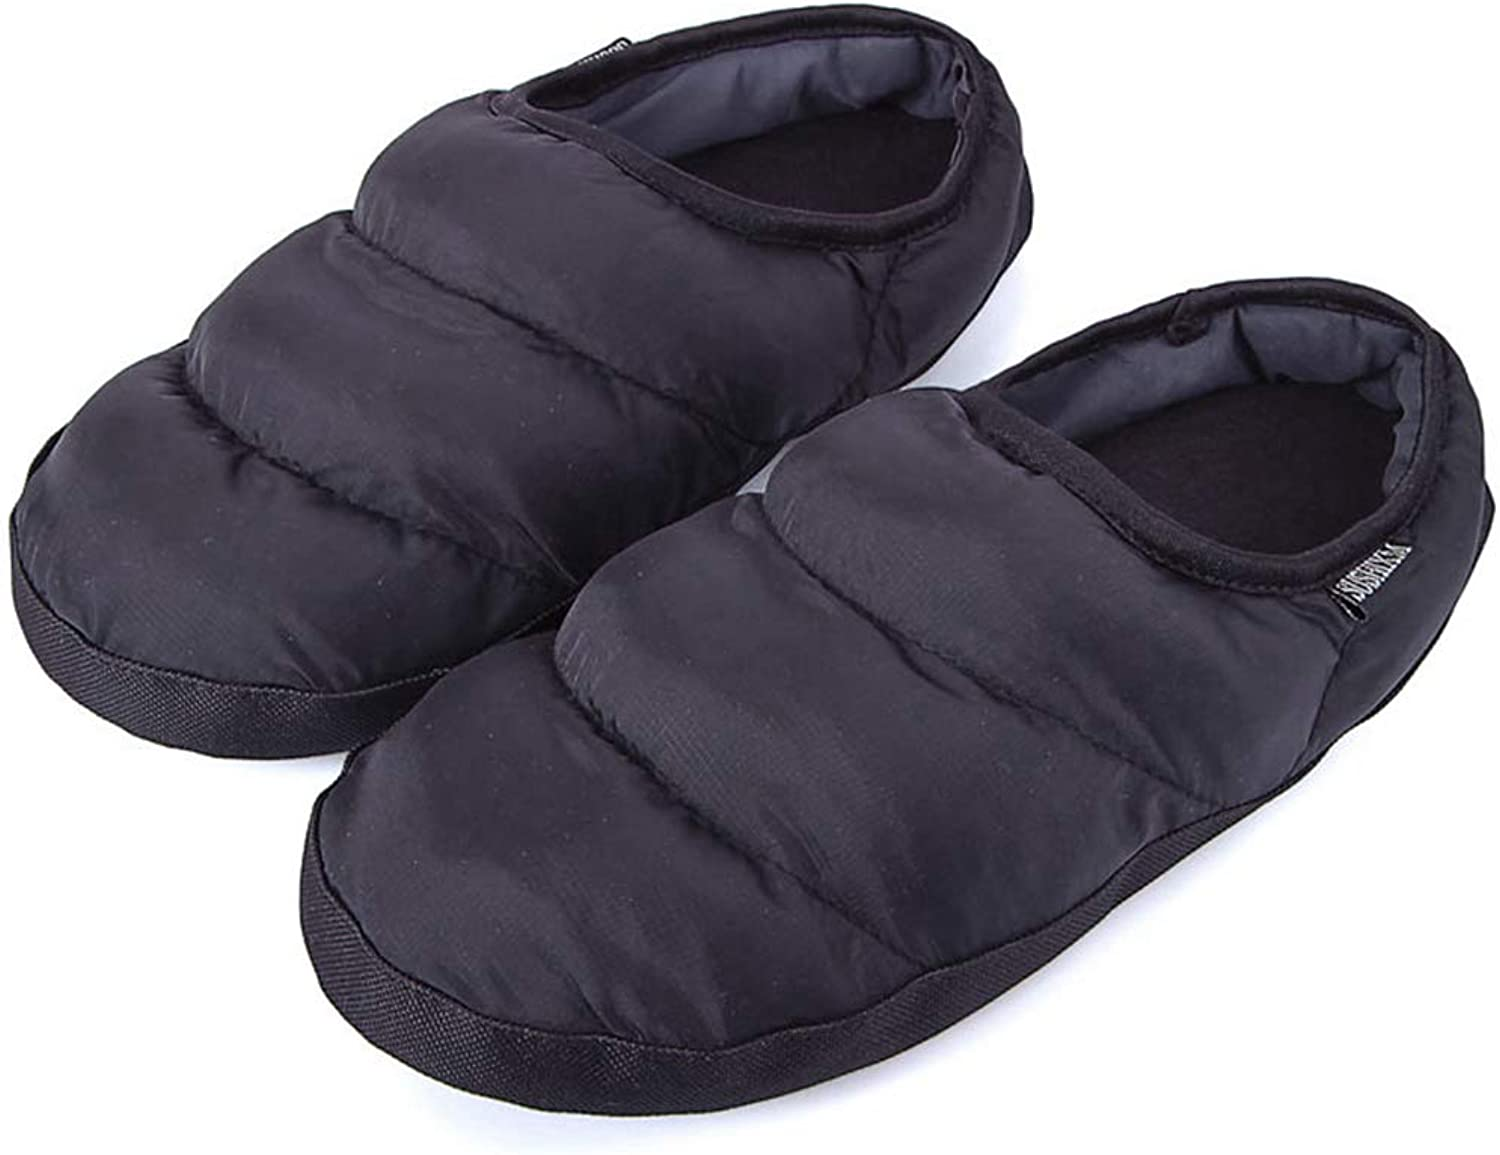 Nafanio Winter Slippers Boots Female Home Warm Indoor shoes Ladies Fuzzy Black Plush House Flip Flops Slides